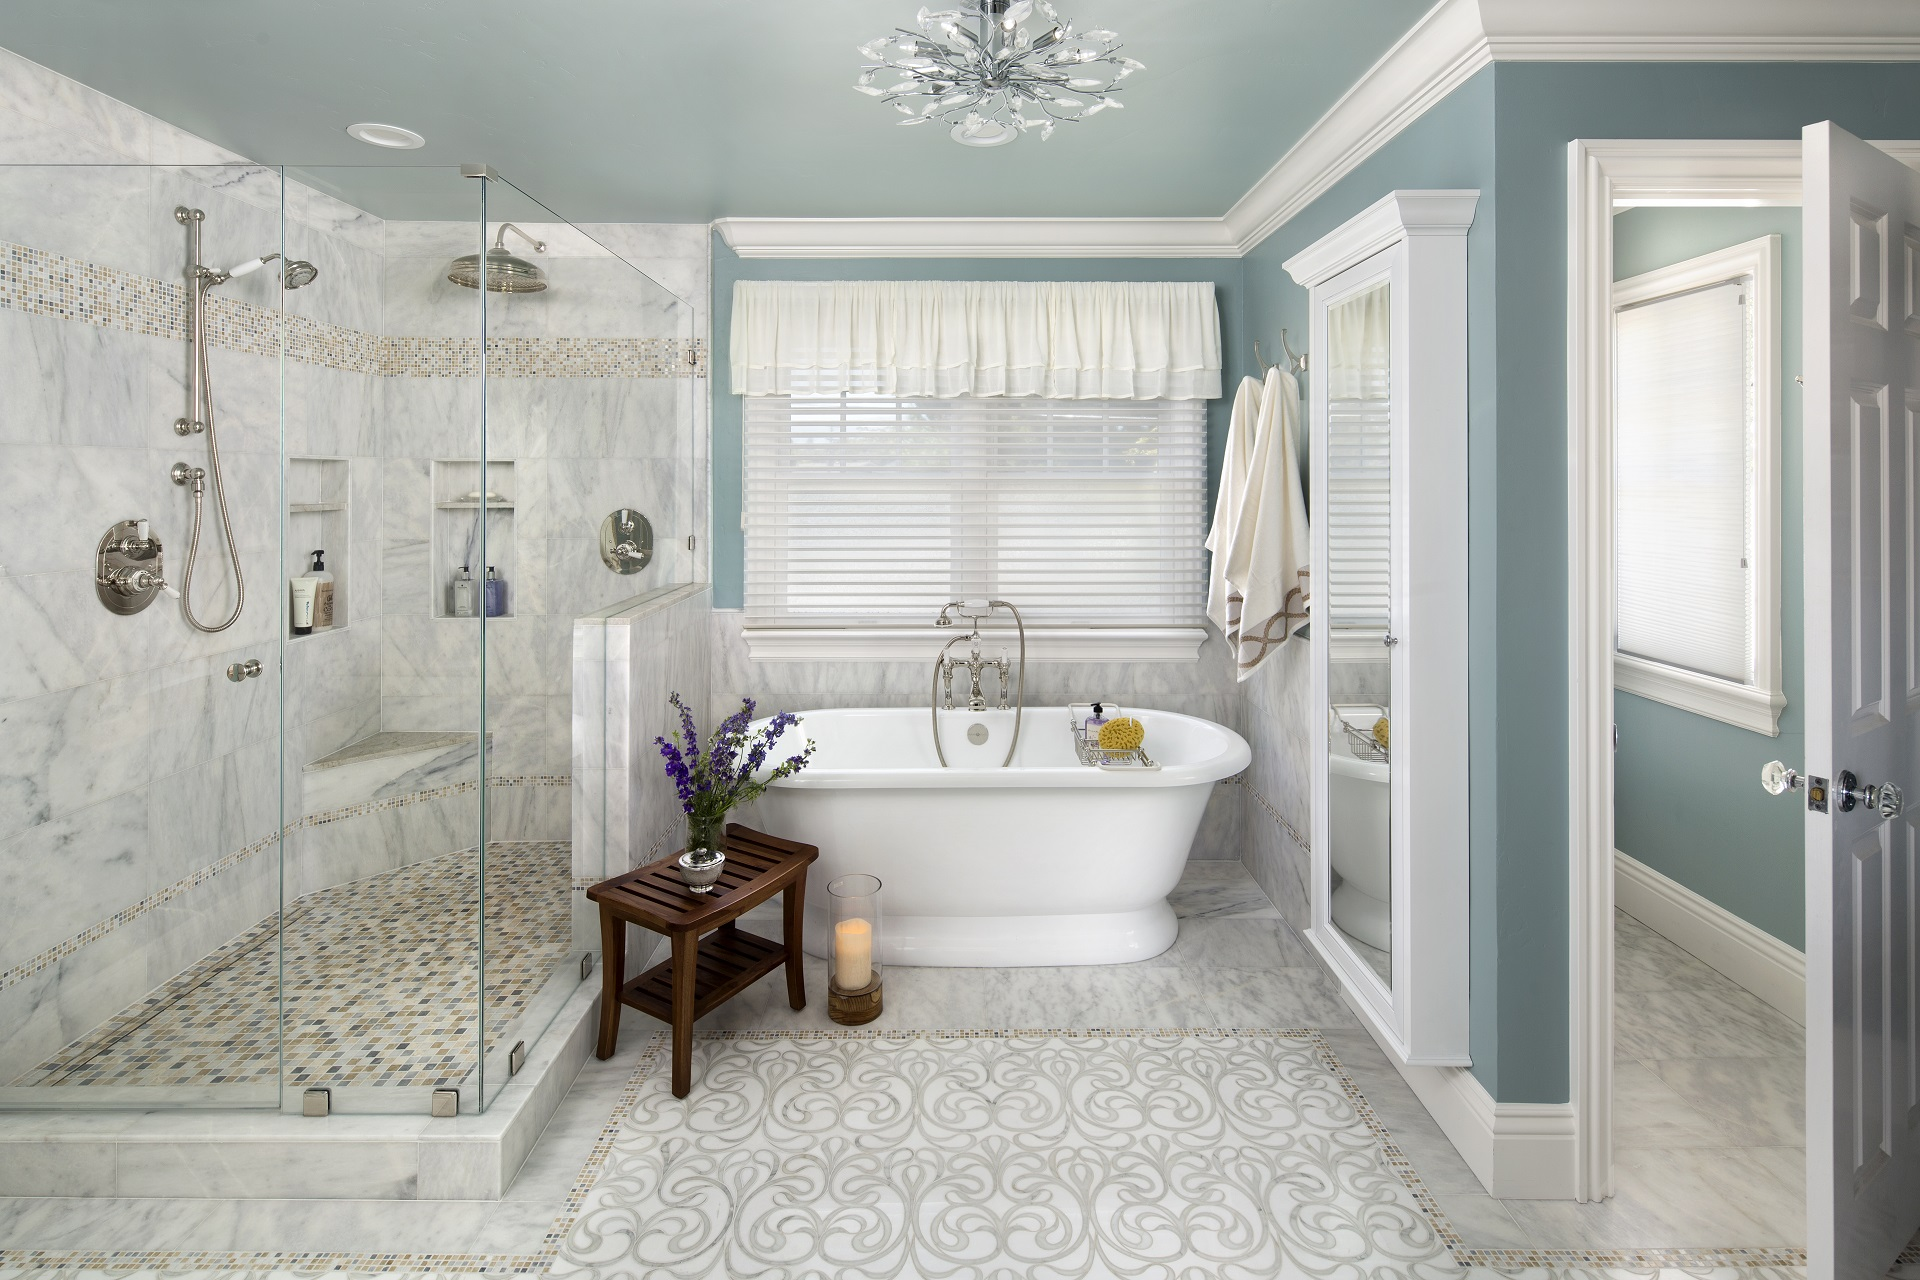 Master Bathroom Remodel Inspiration - Valley Home Builder